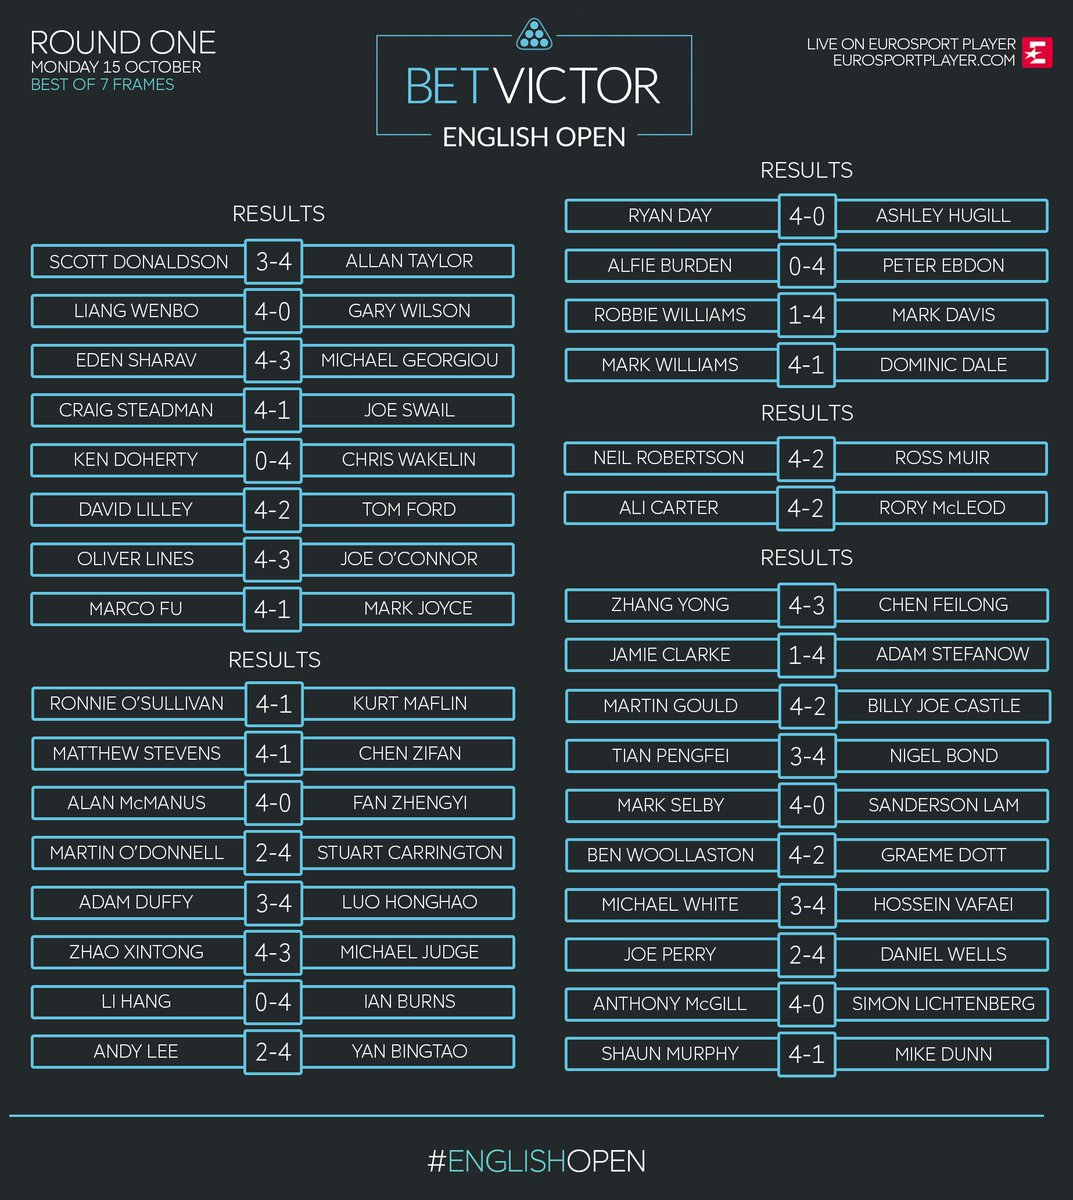 ...and that's a wrap on Day 1!  See final scores from Round 1 of the @BetVictor English Open in Crawley #EnglishOpen